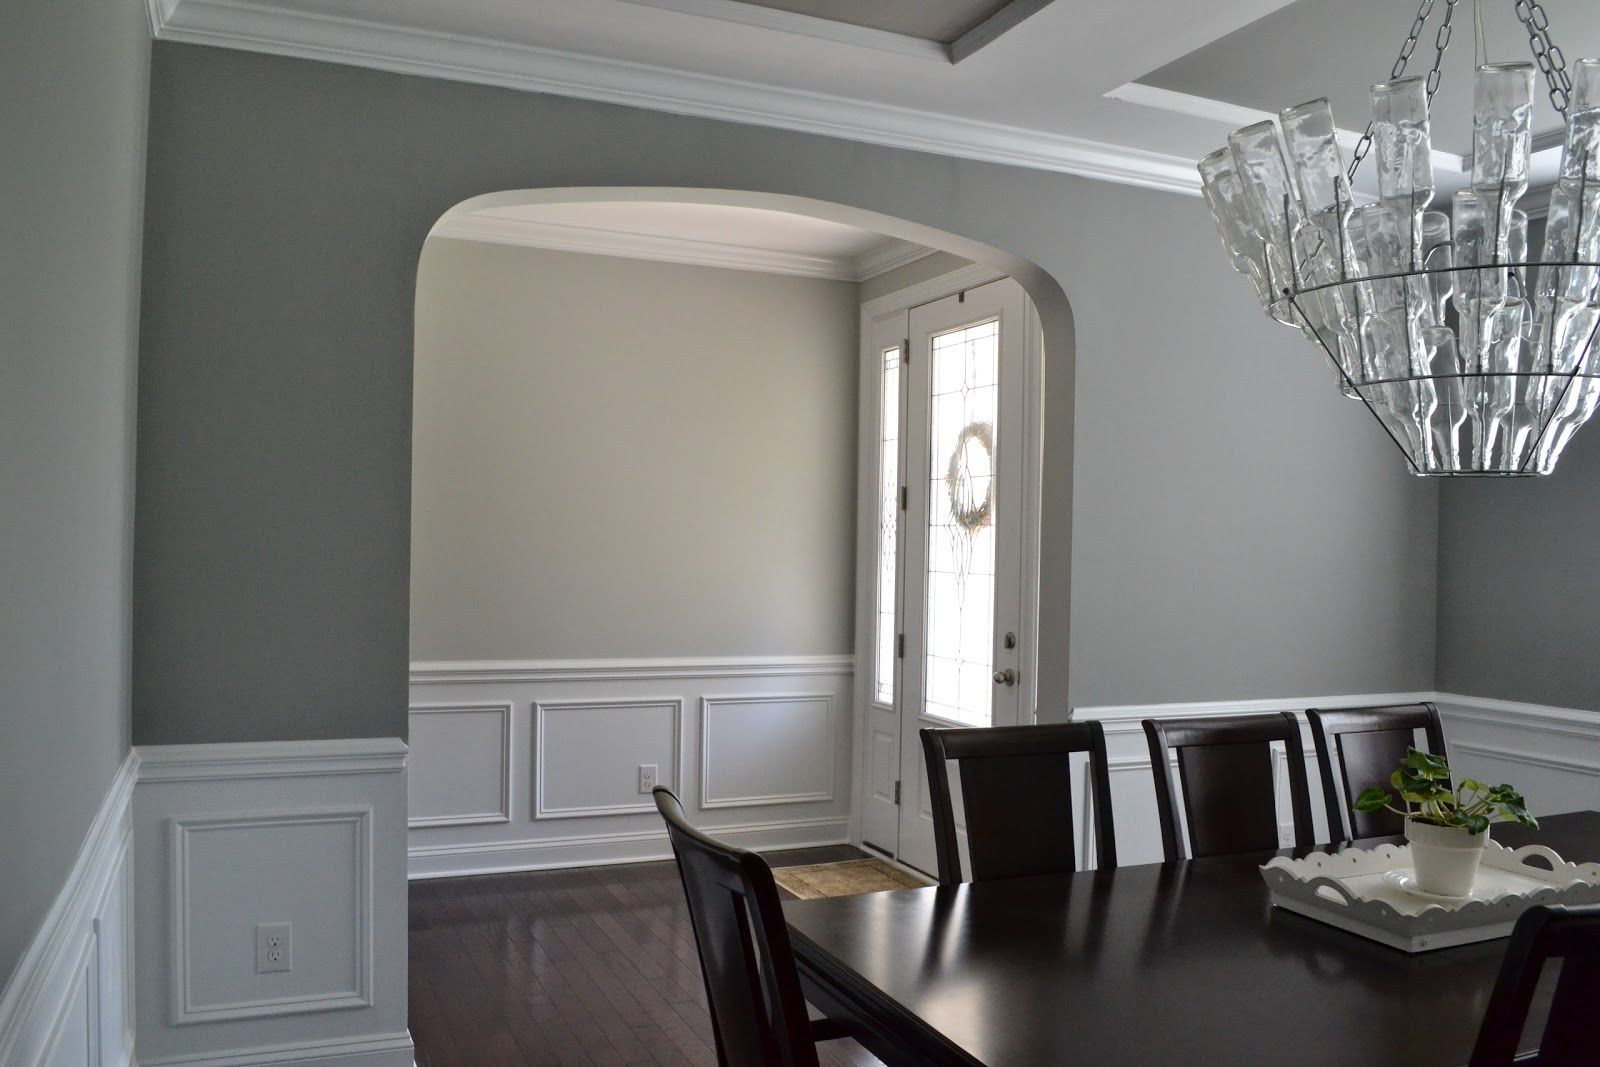 Best ideas about Sherwin-Williams Paint Colors . Save or Pin Gray Paint on Pinterest Now.